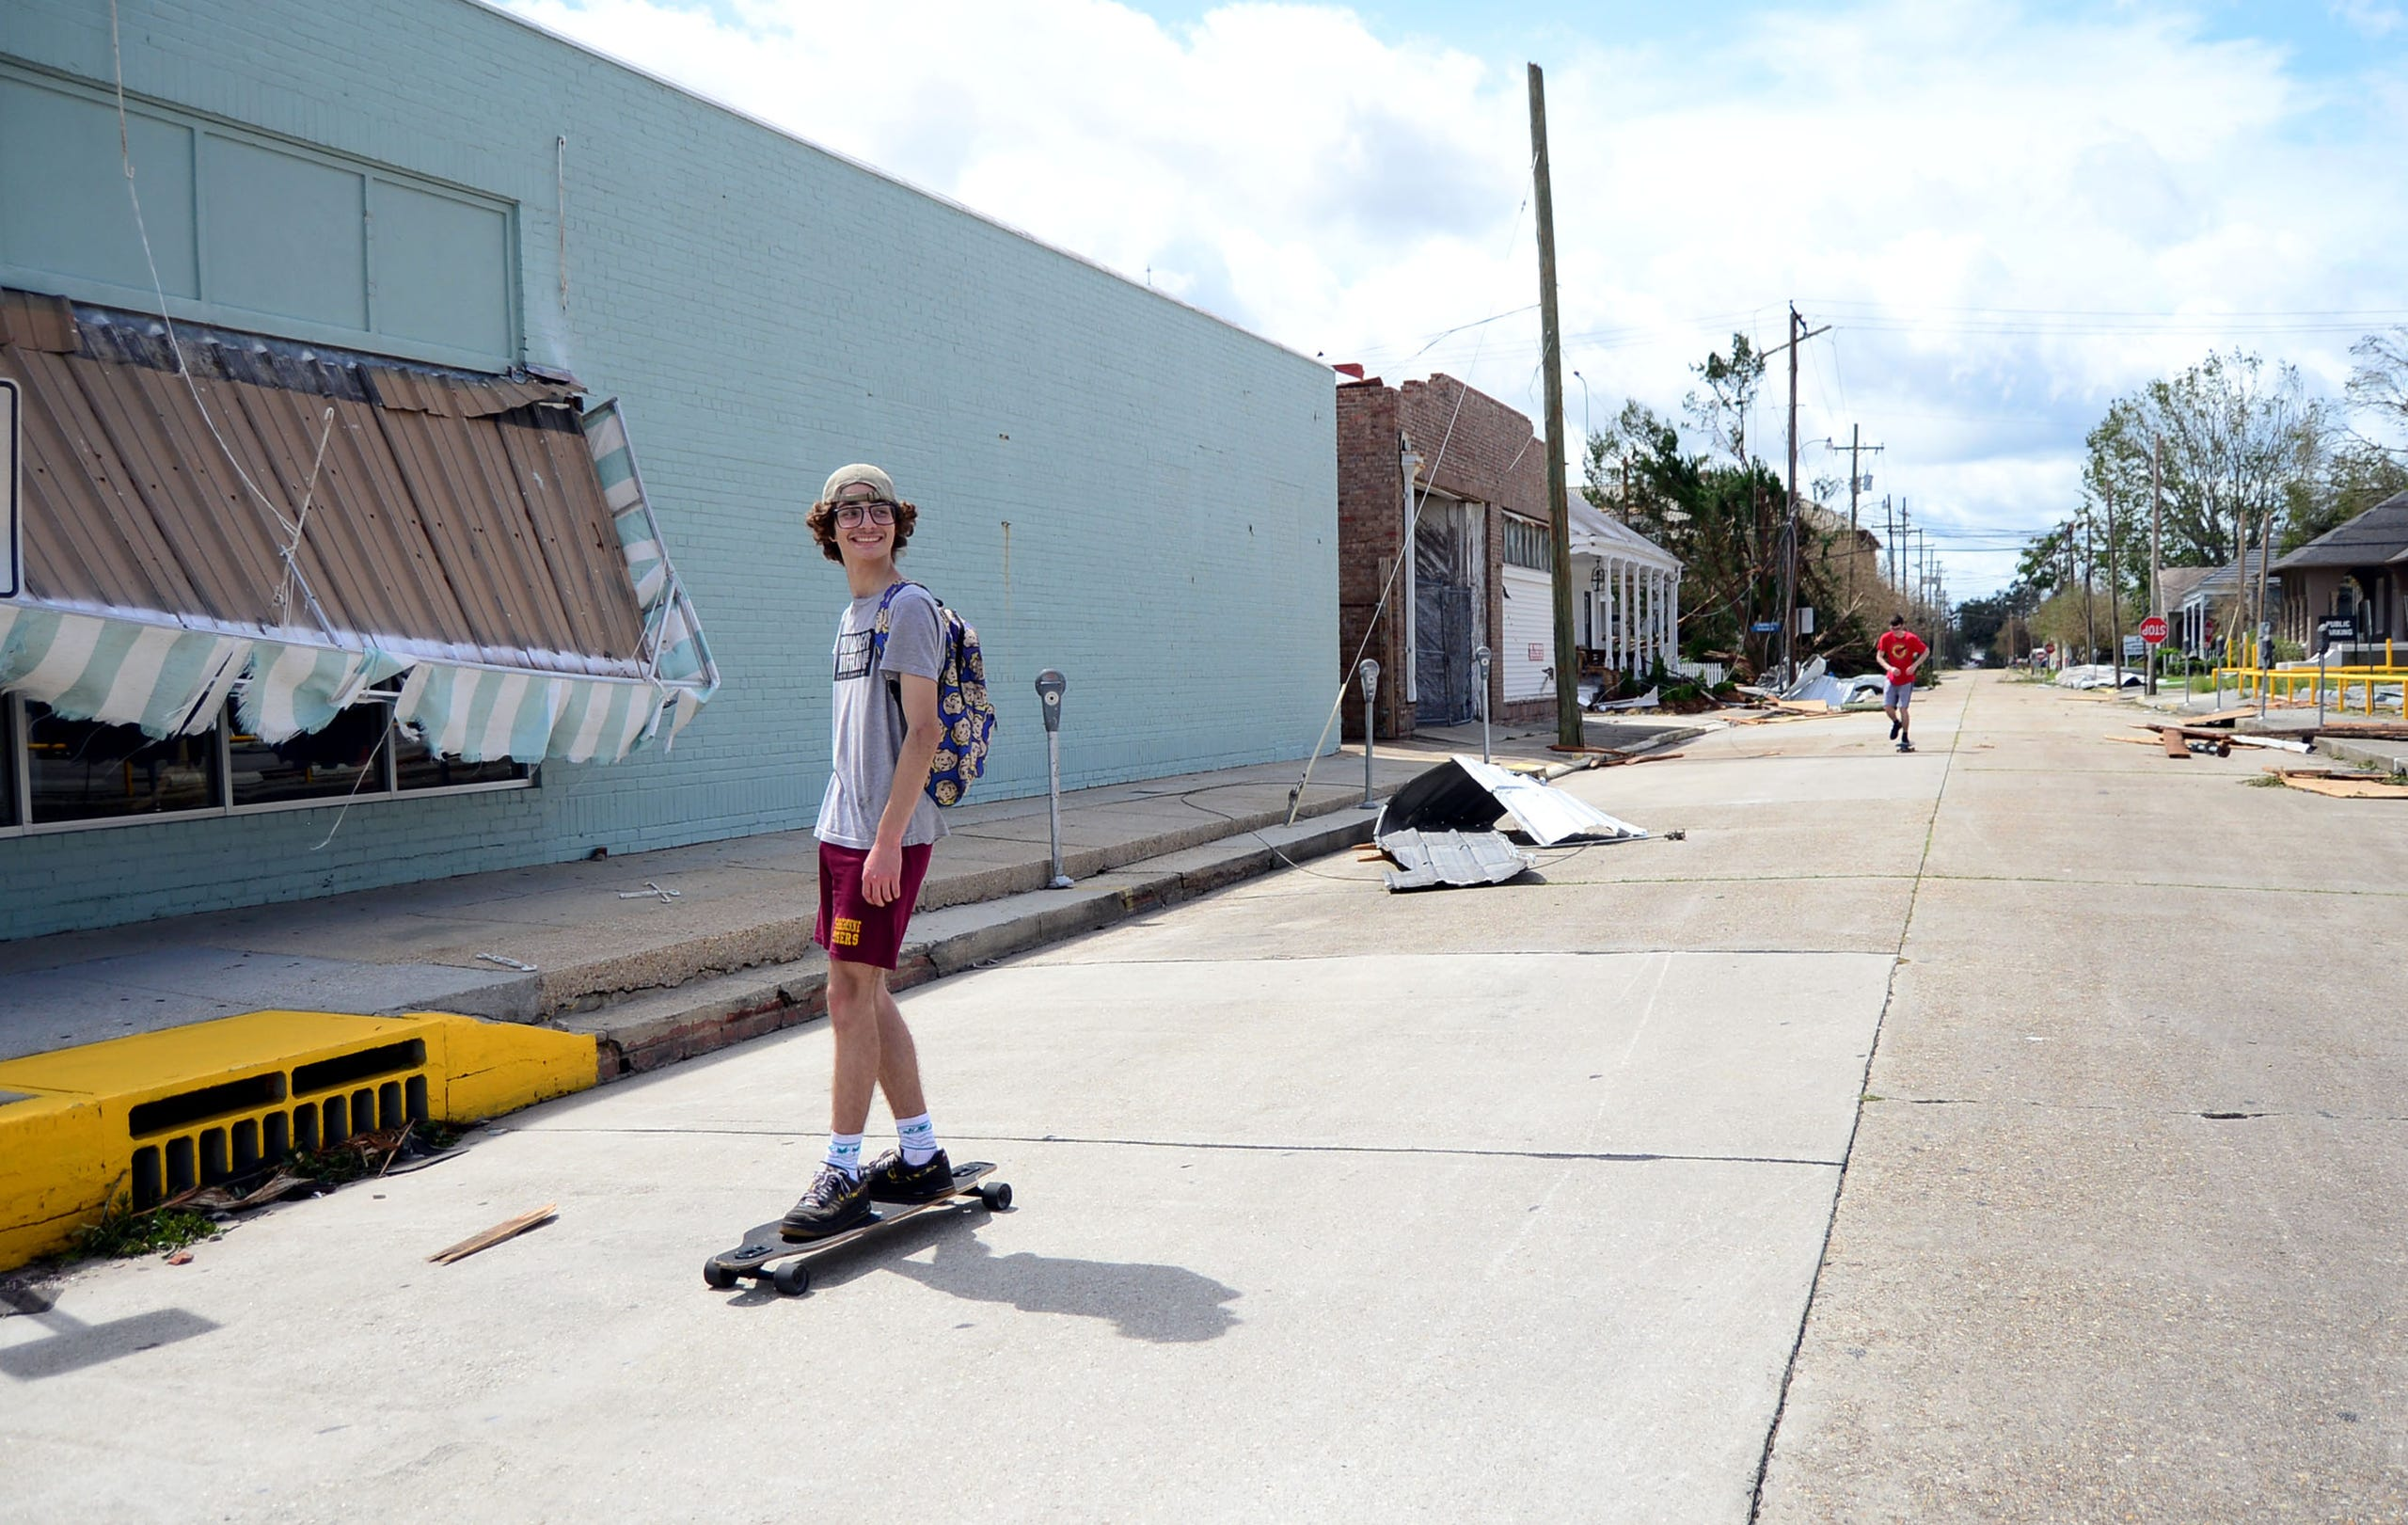 Two people skateboard in near downtown Houma on Monday, Aug. 30, 2021. Storm damage and debris can be seen along the street.